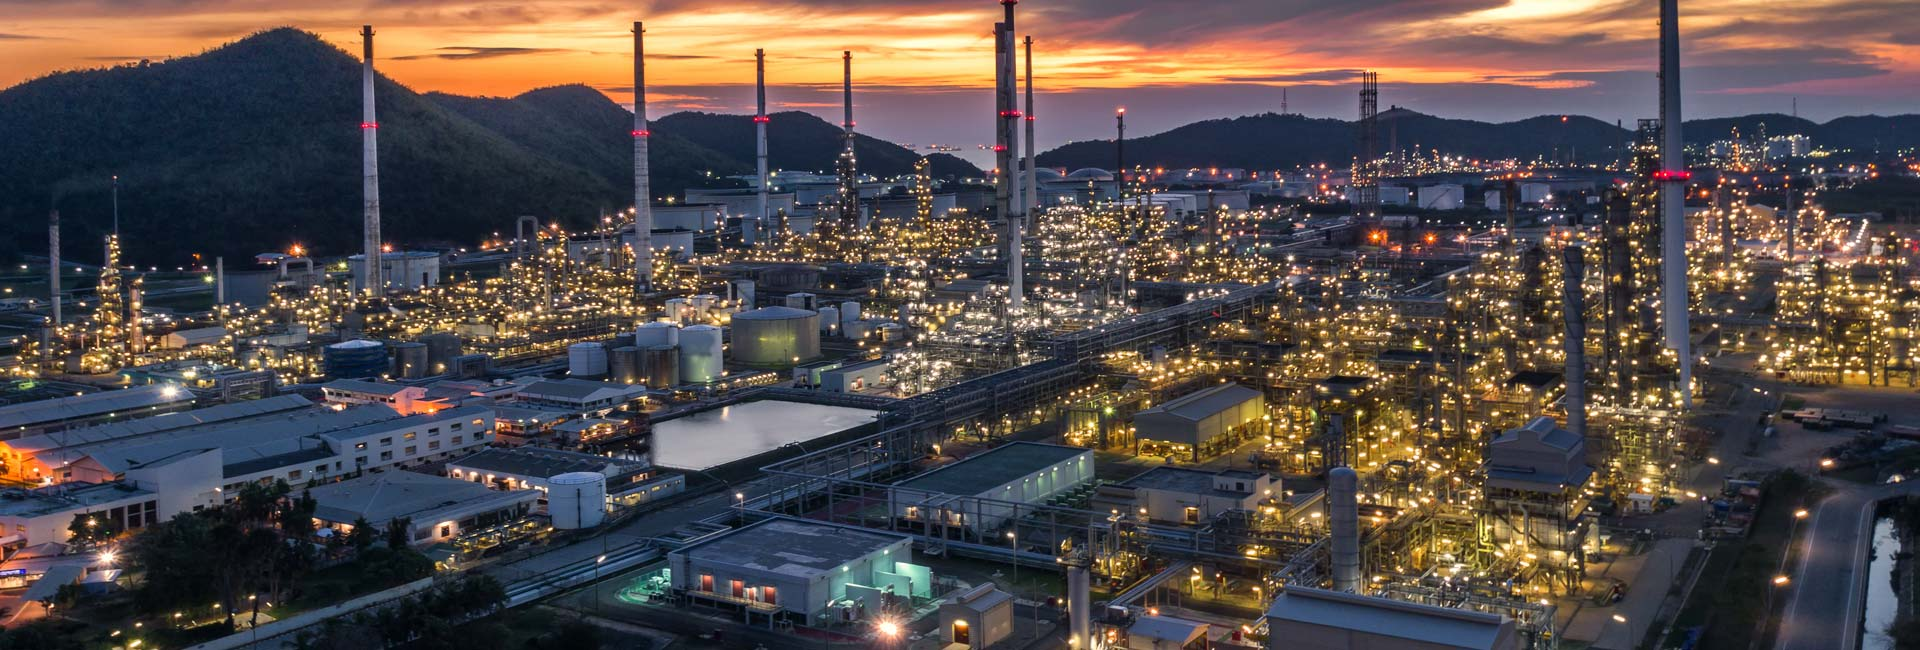 Preventing Petrochemical Process Failure Using AI